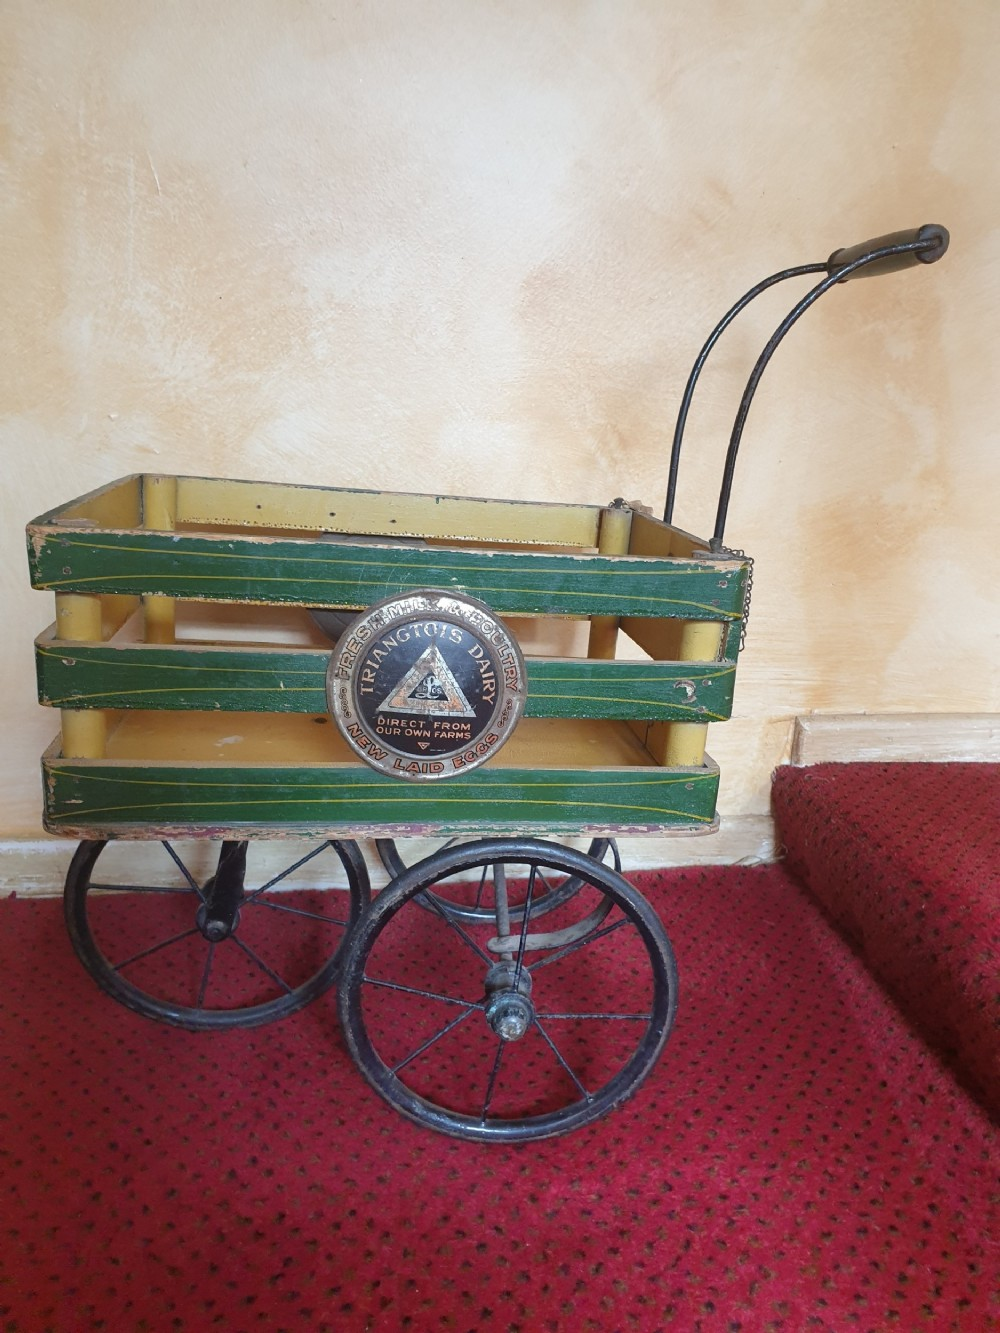 rare triang childs farmegg cart c1920 original